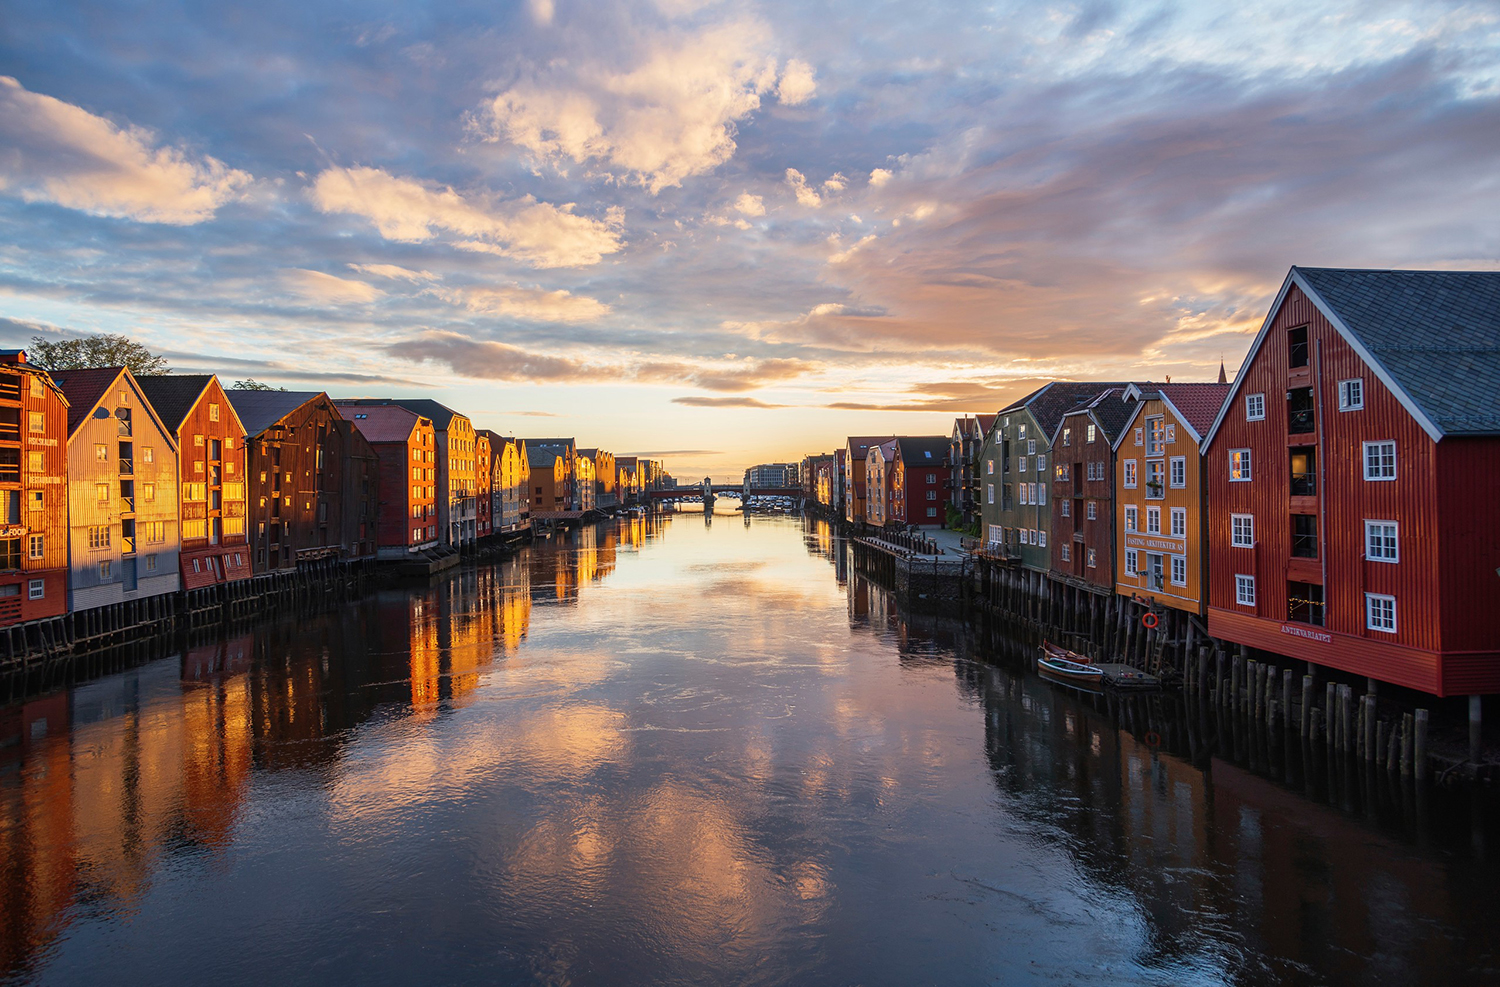 Trondheim is a cultural and historic center in Mid-Norway